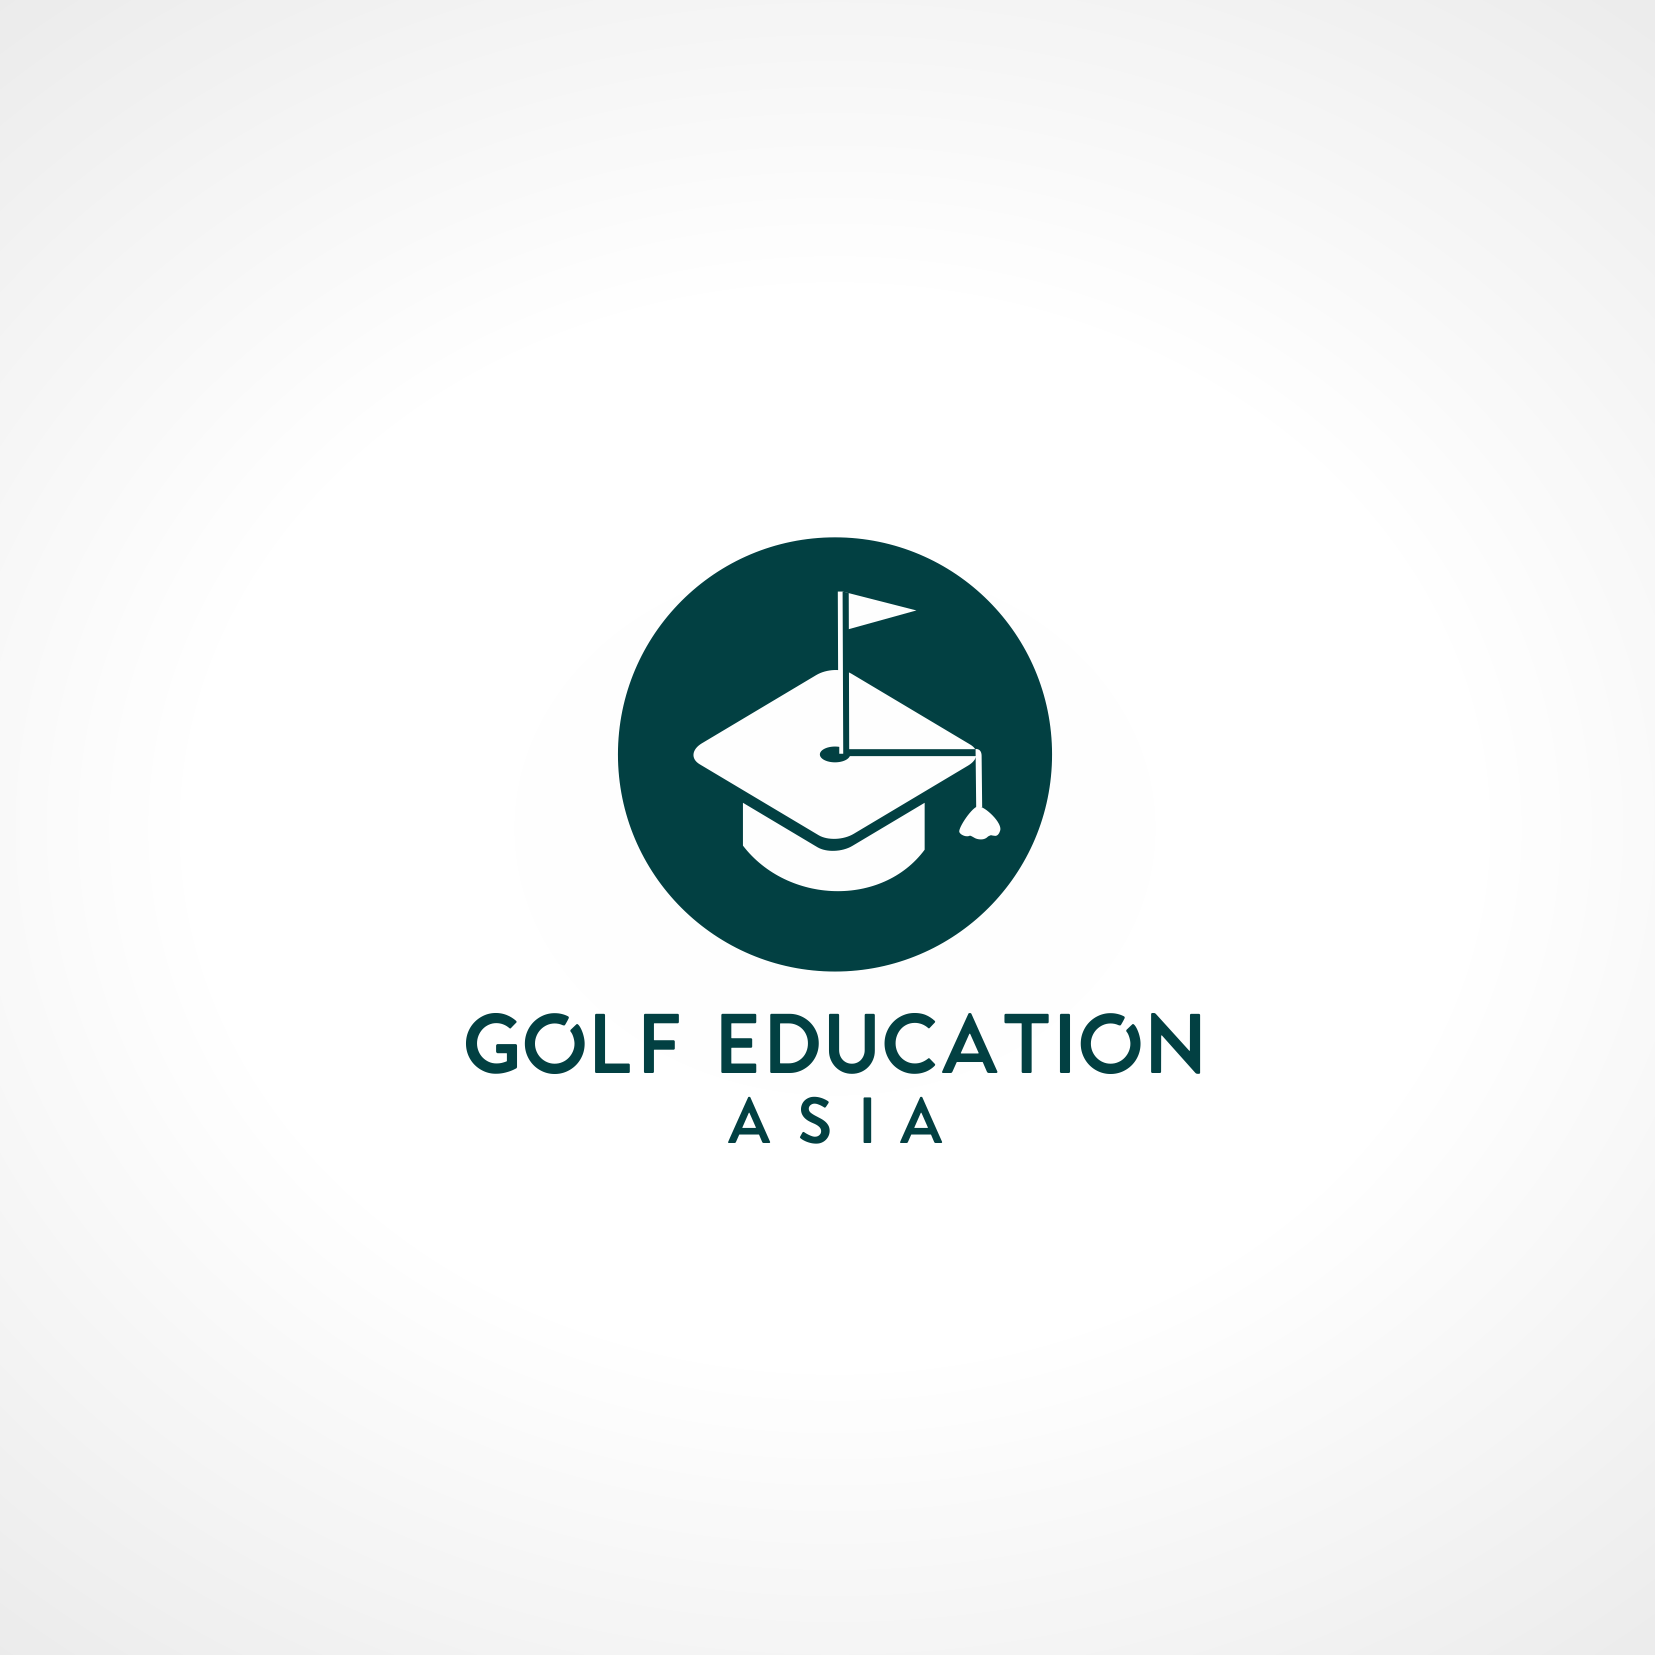 Golf Education Asia logo